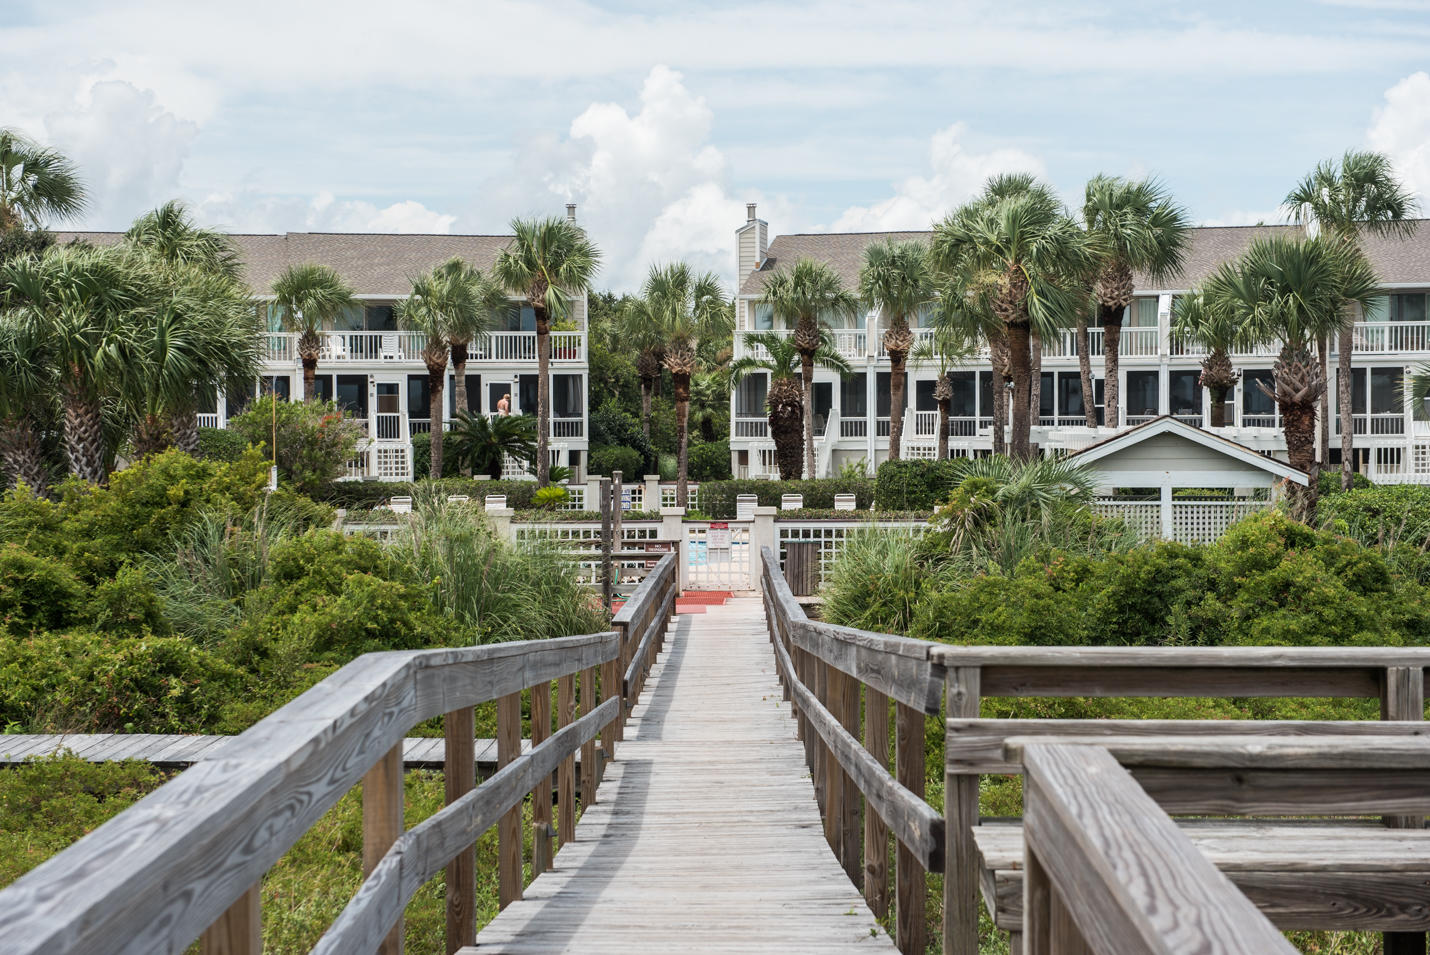 Beach Club Villas Homes For Sale - 66 Beach Club Villas, Isle of Palms, SC - 20